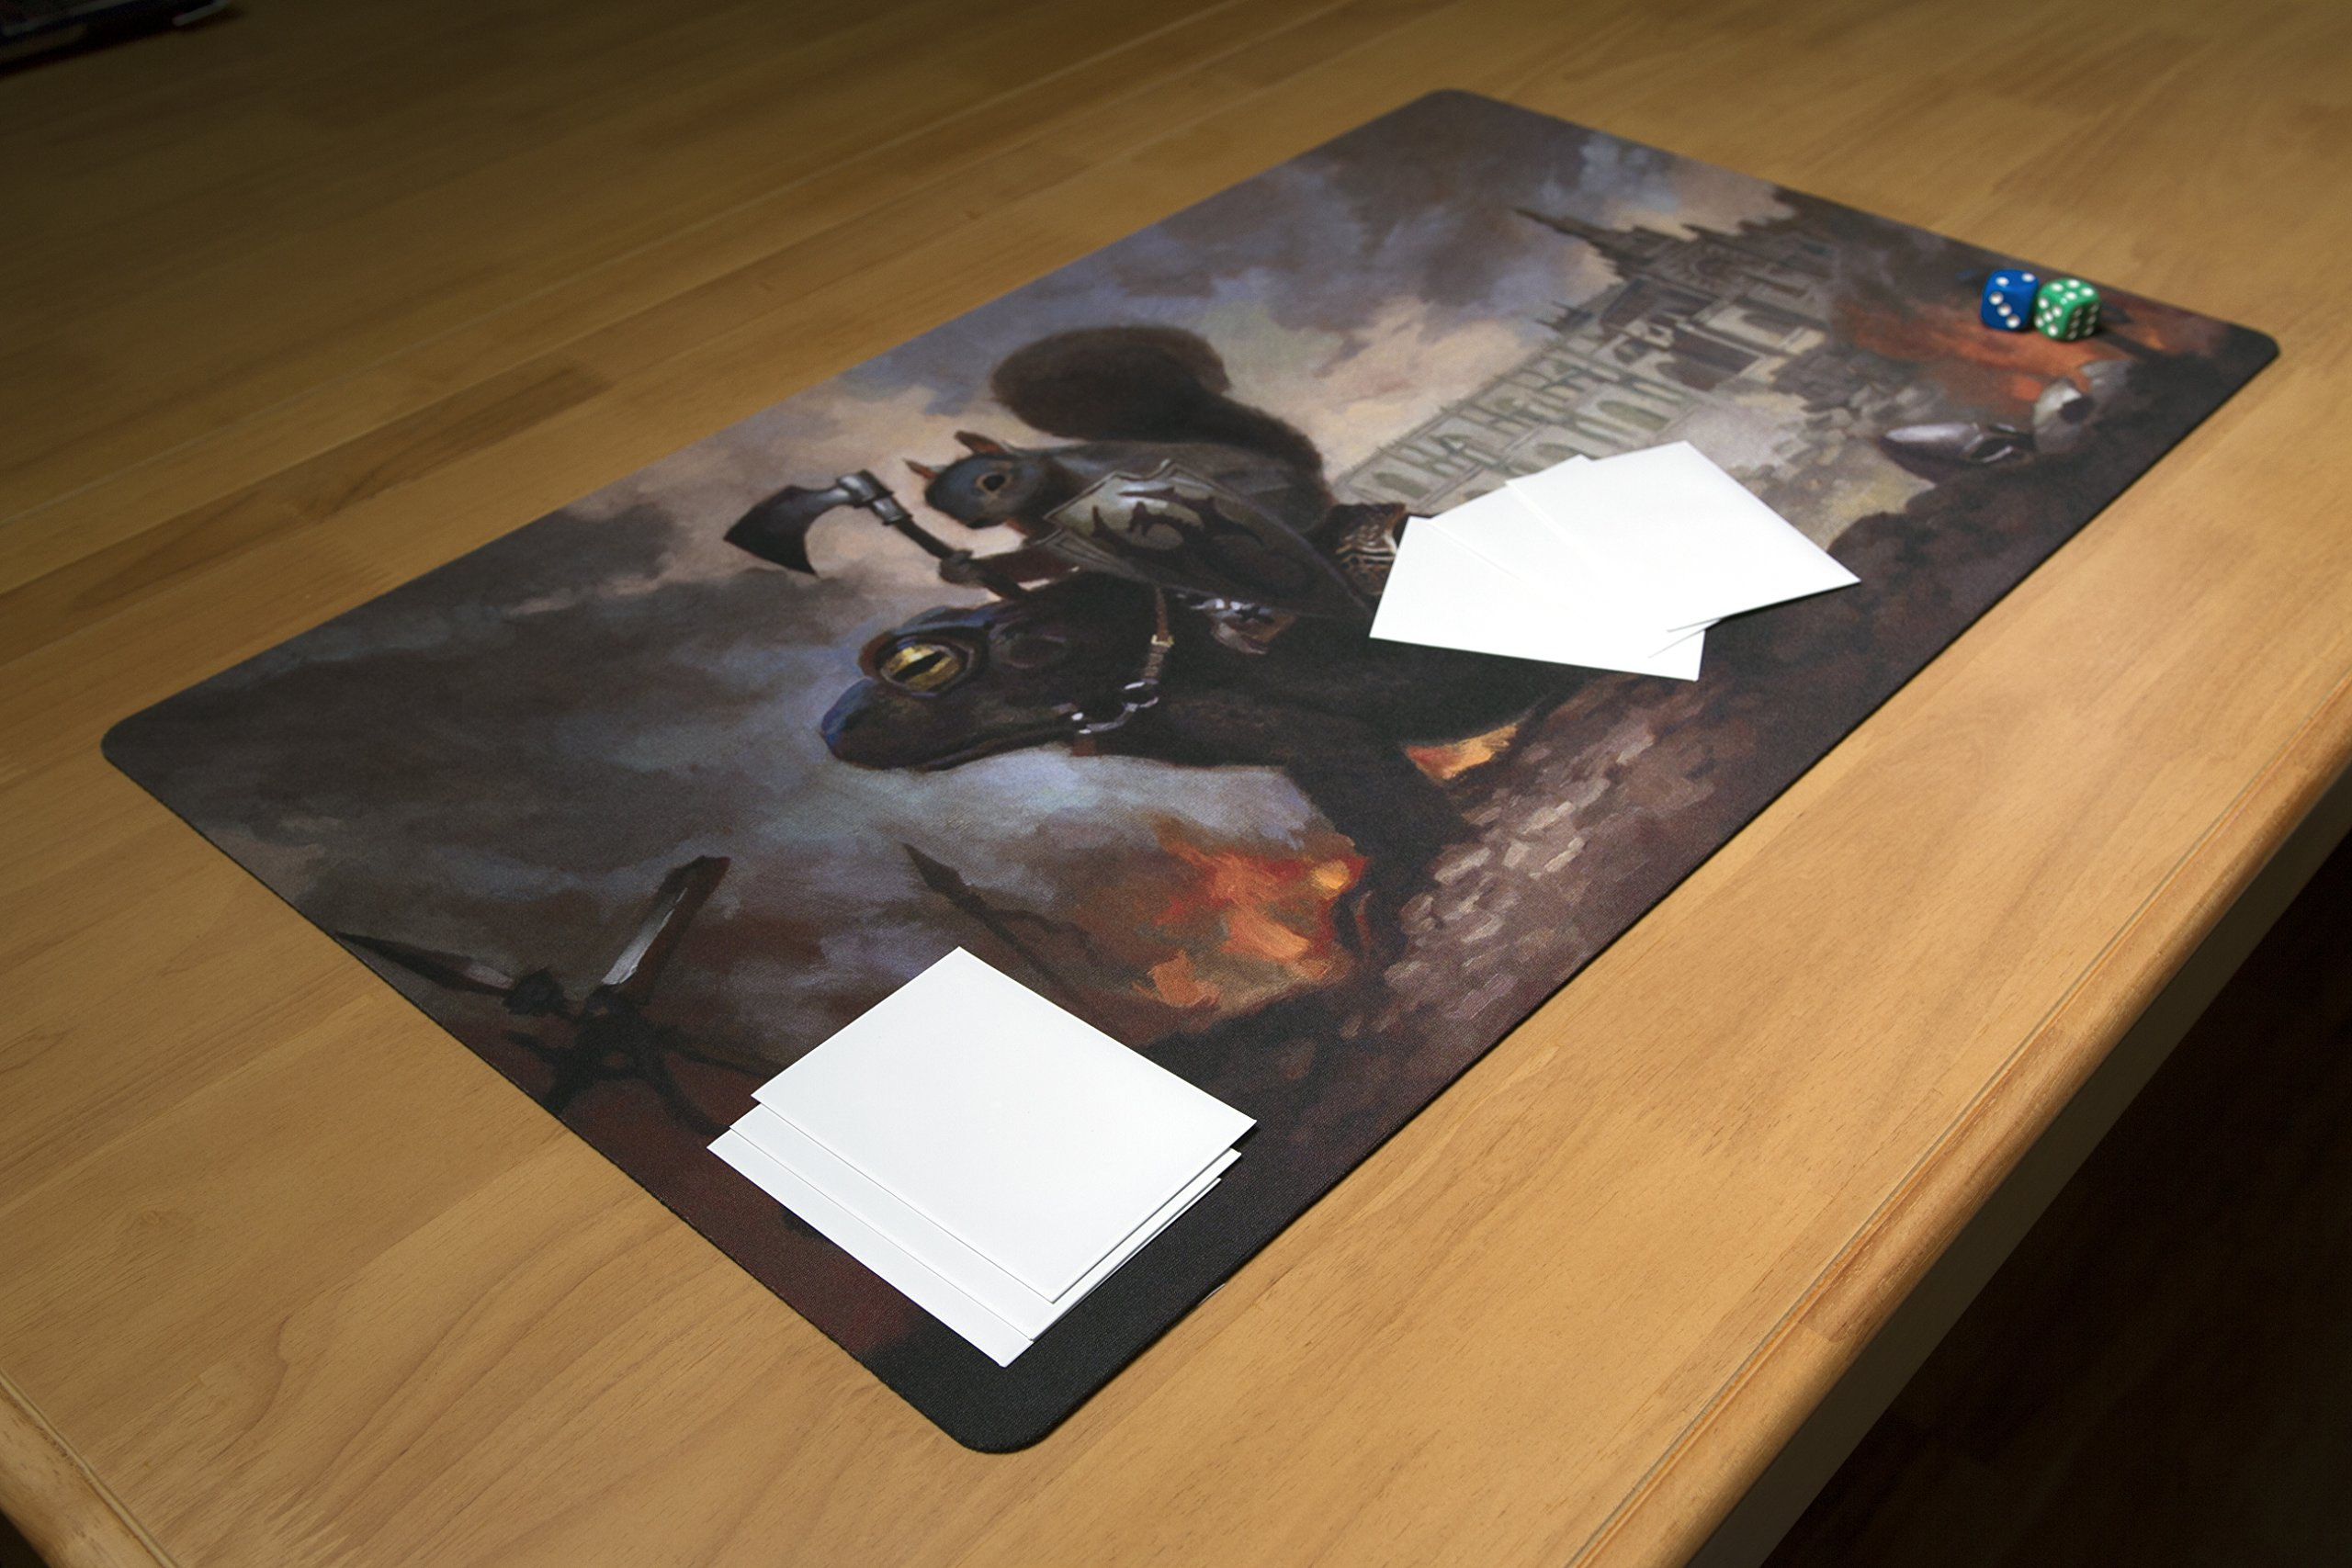 Inked Playmats Toad Rider Playmat Inked Gaming Perfect for Card Gaming TCG Game Mat by Inked Playmats (Image #3)